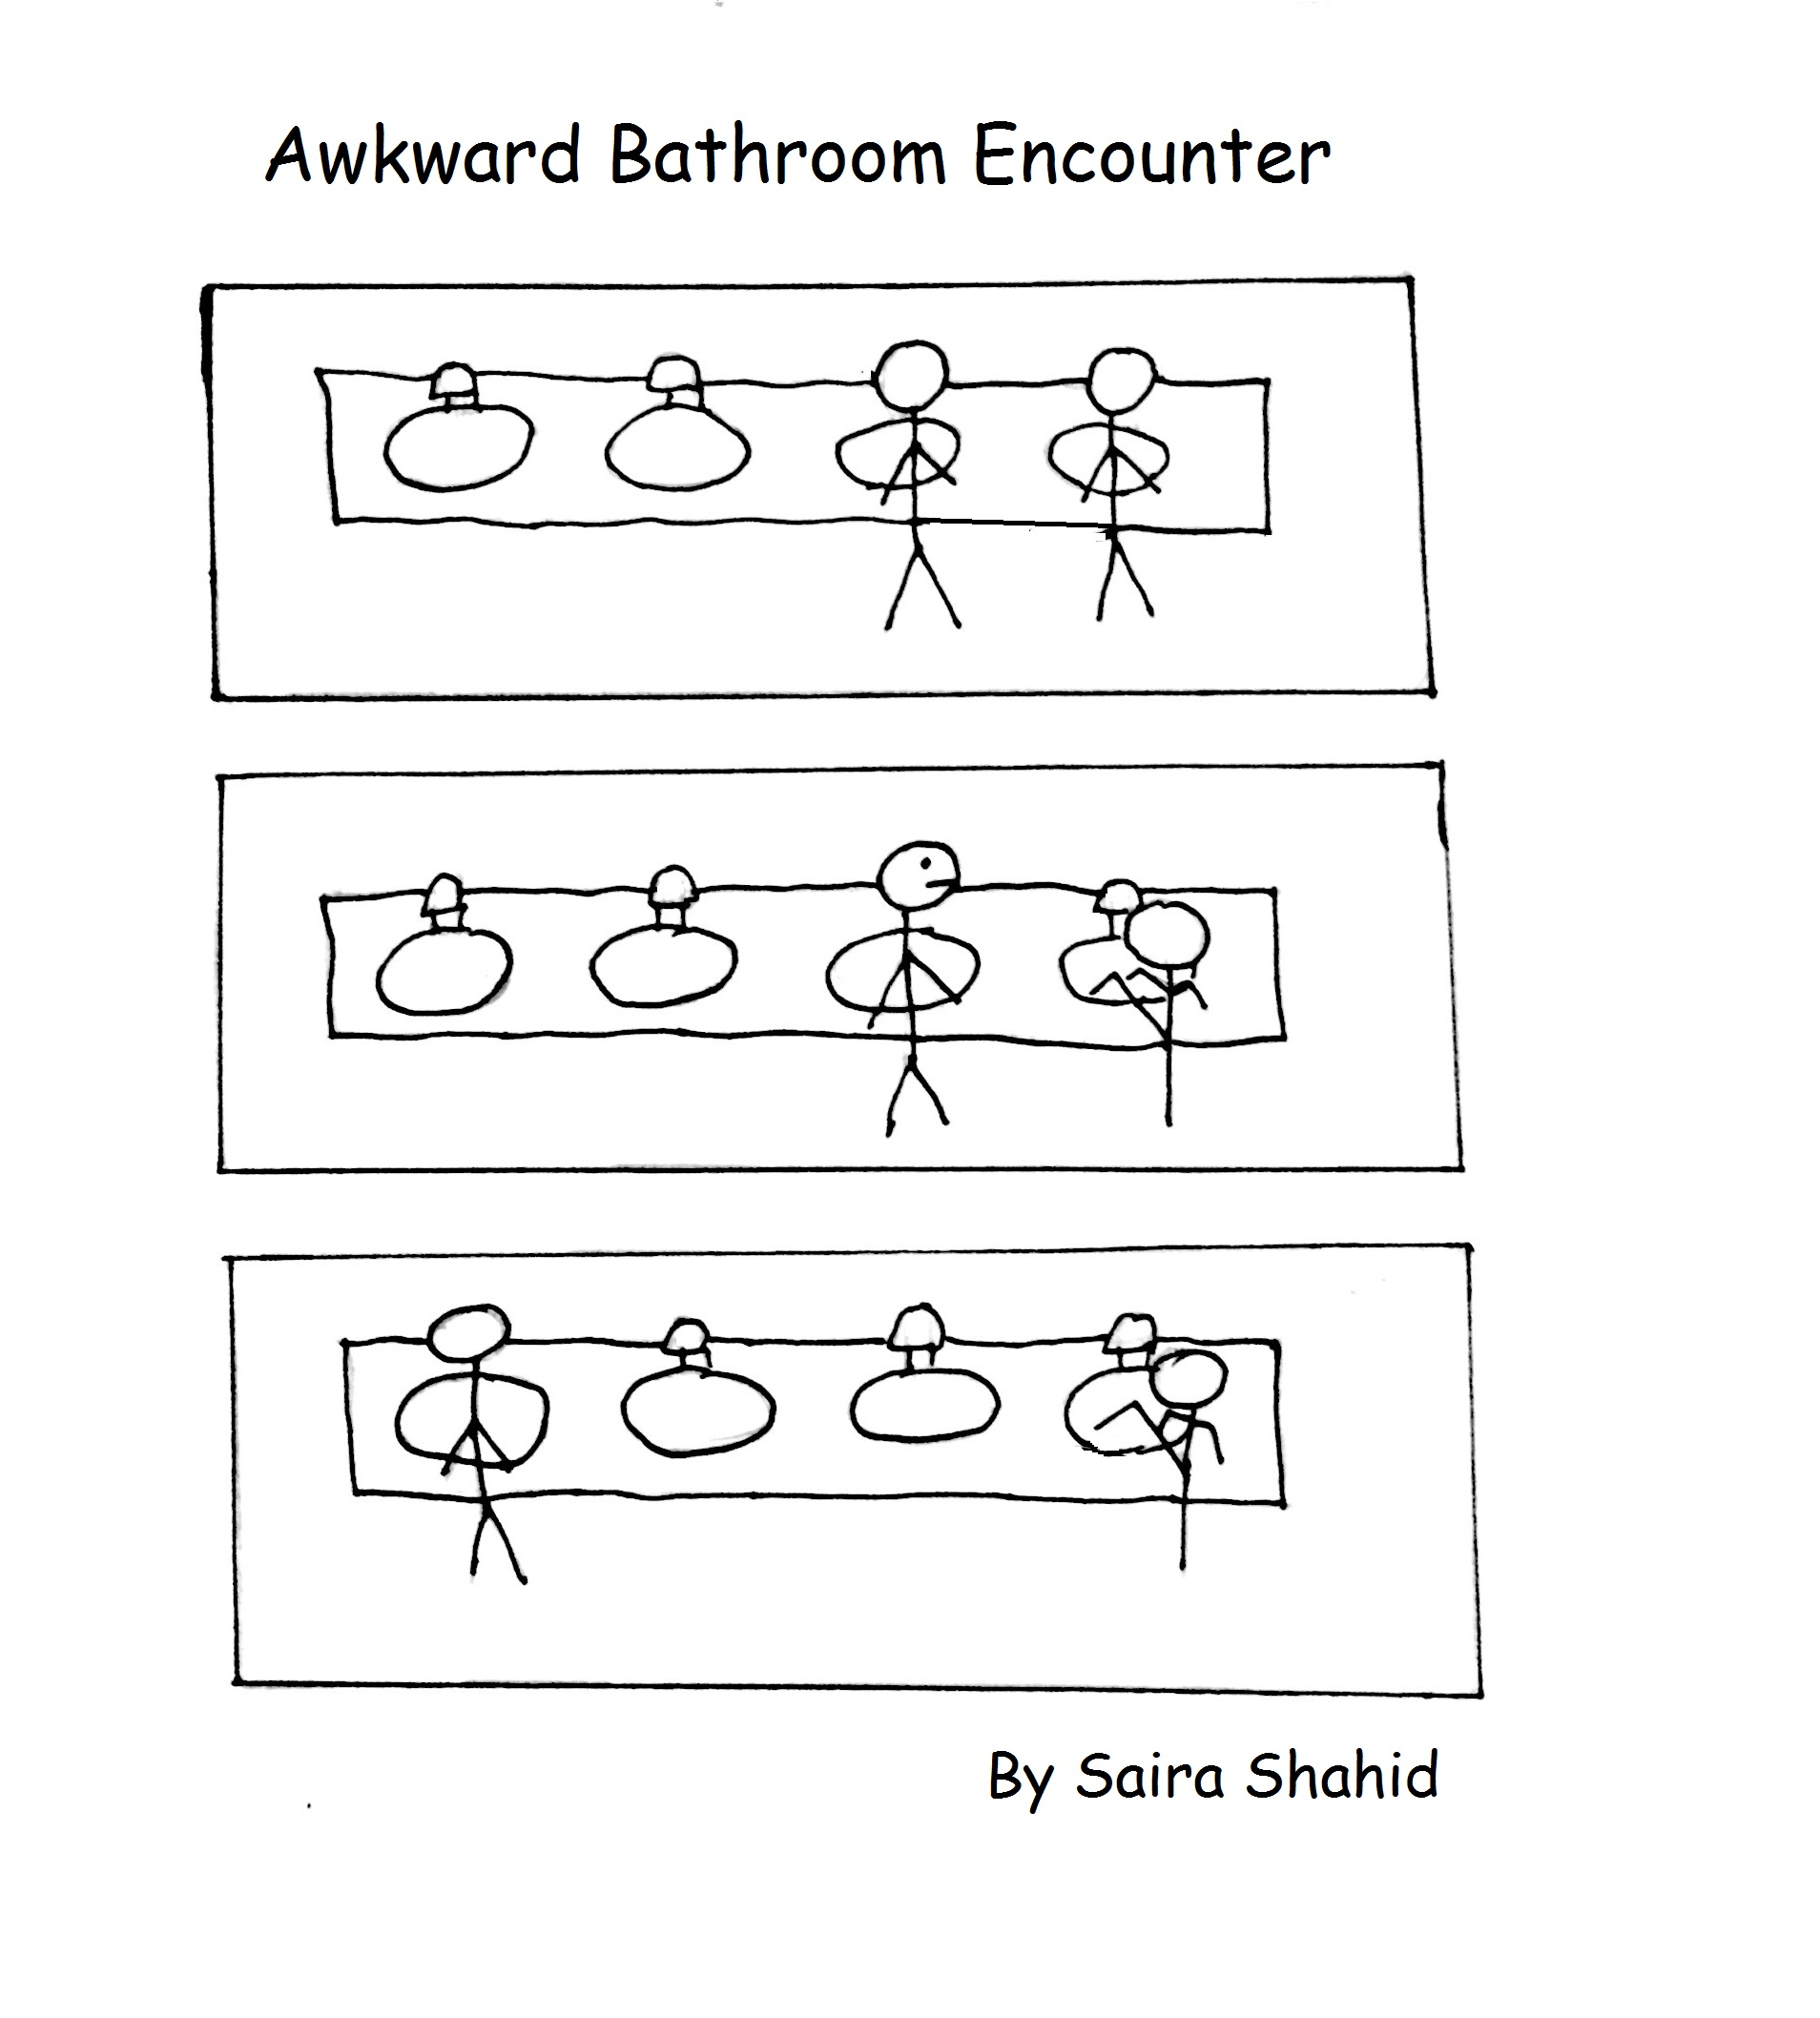 awkward-bathroom-encounter